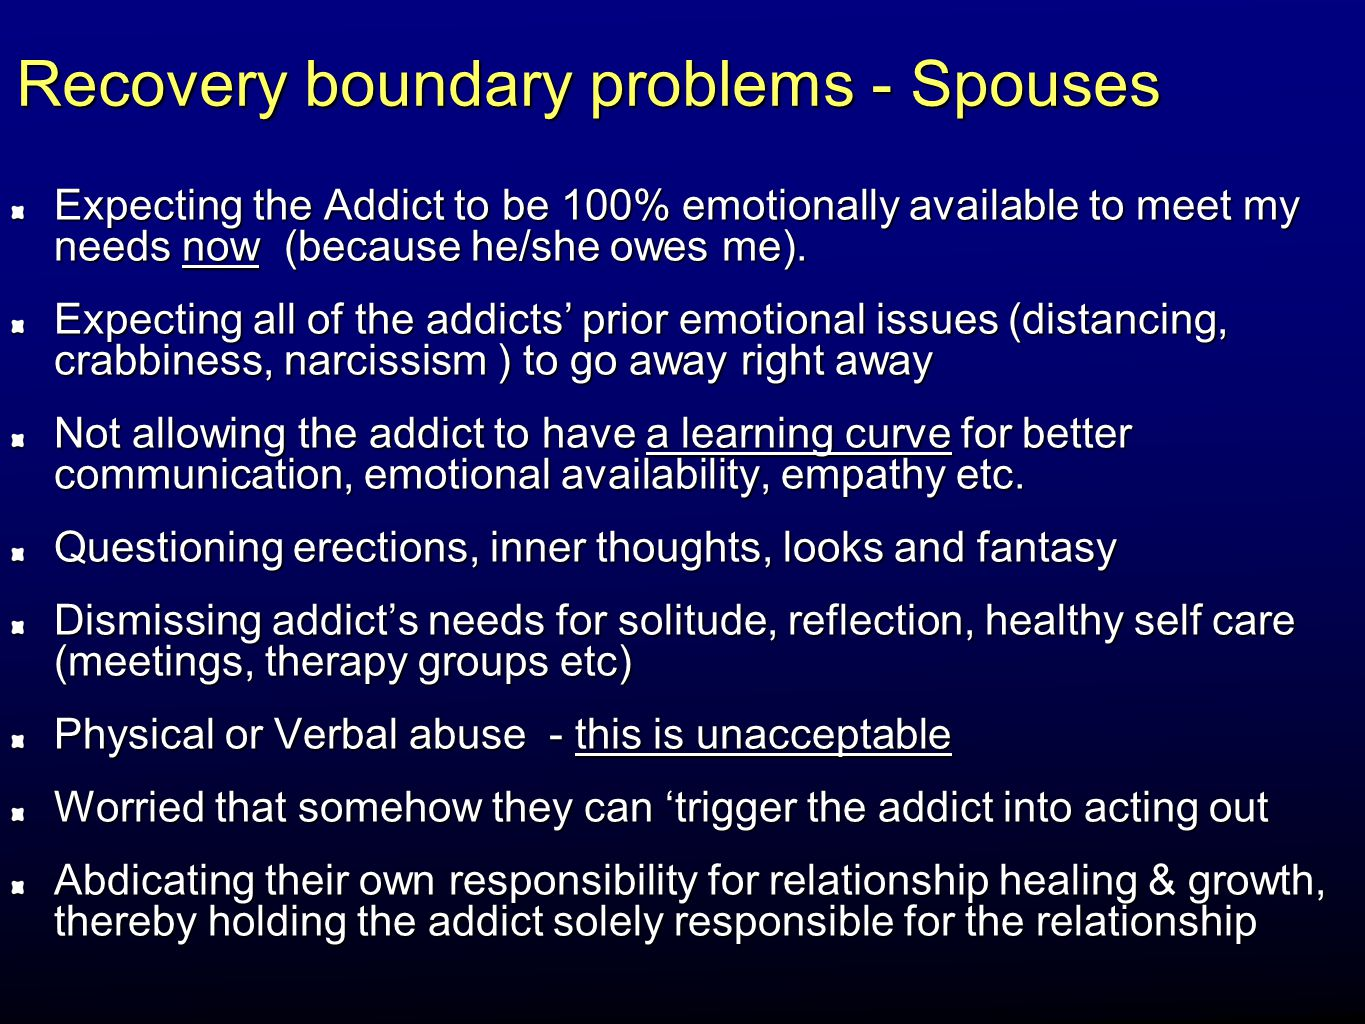 Recovery boundary problems - Spouses